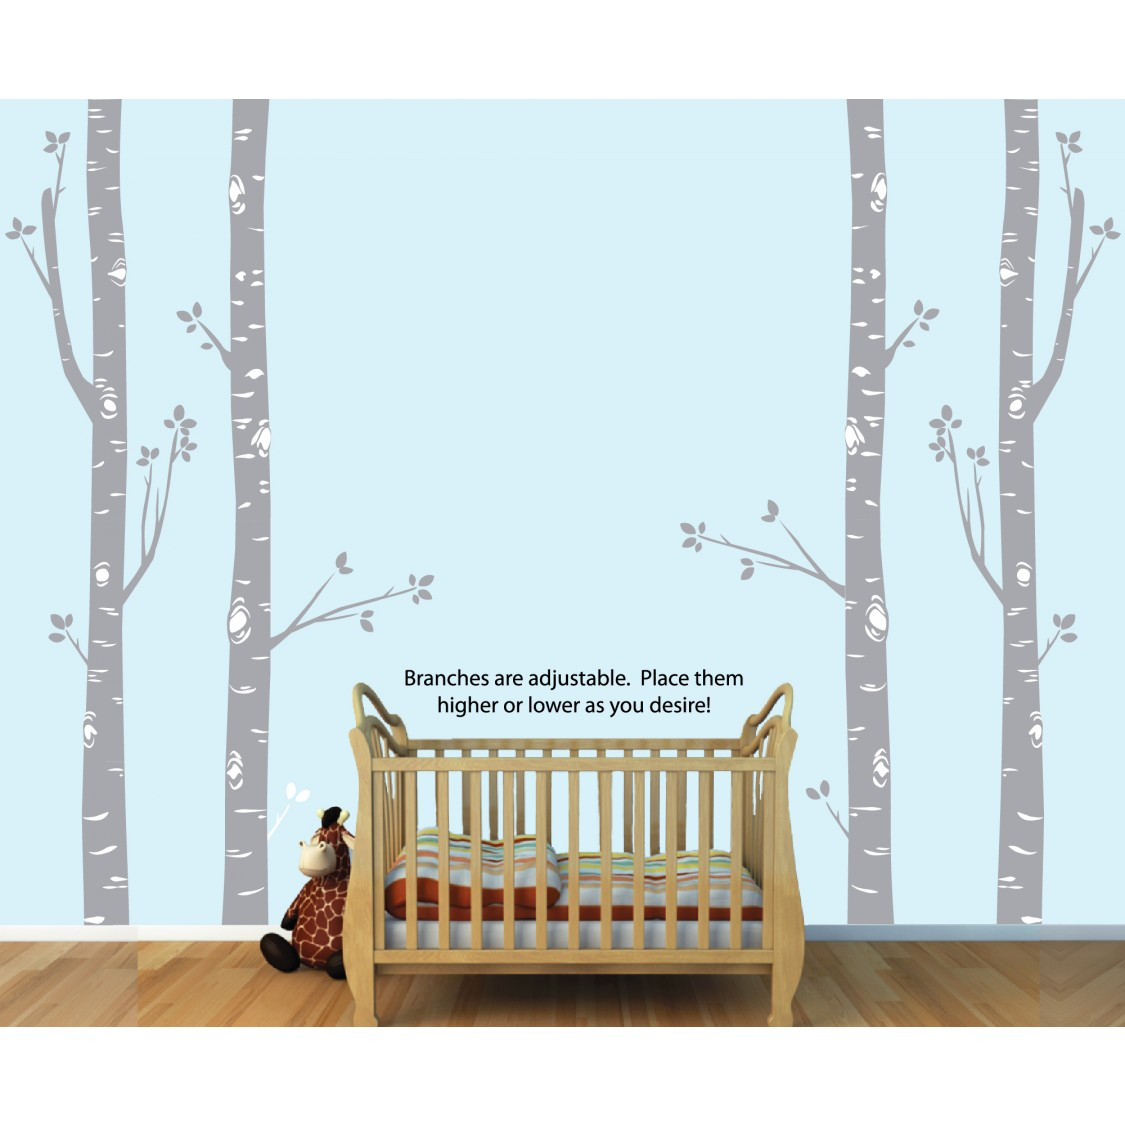 Birch Tree Wall Stickers And Tree Decals Wall Stickers For